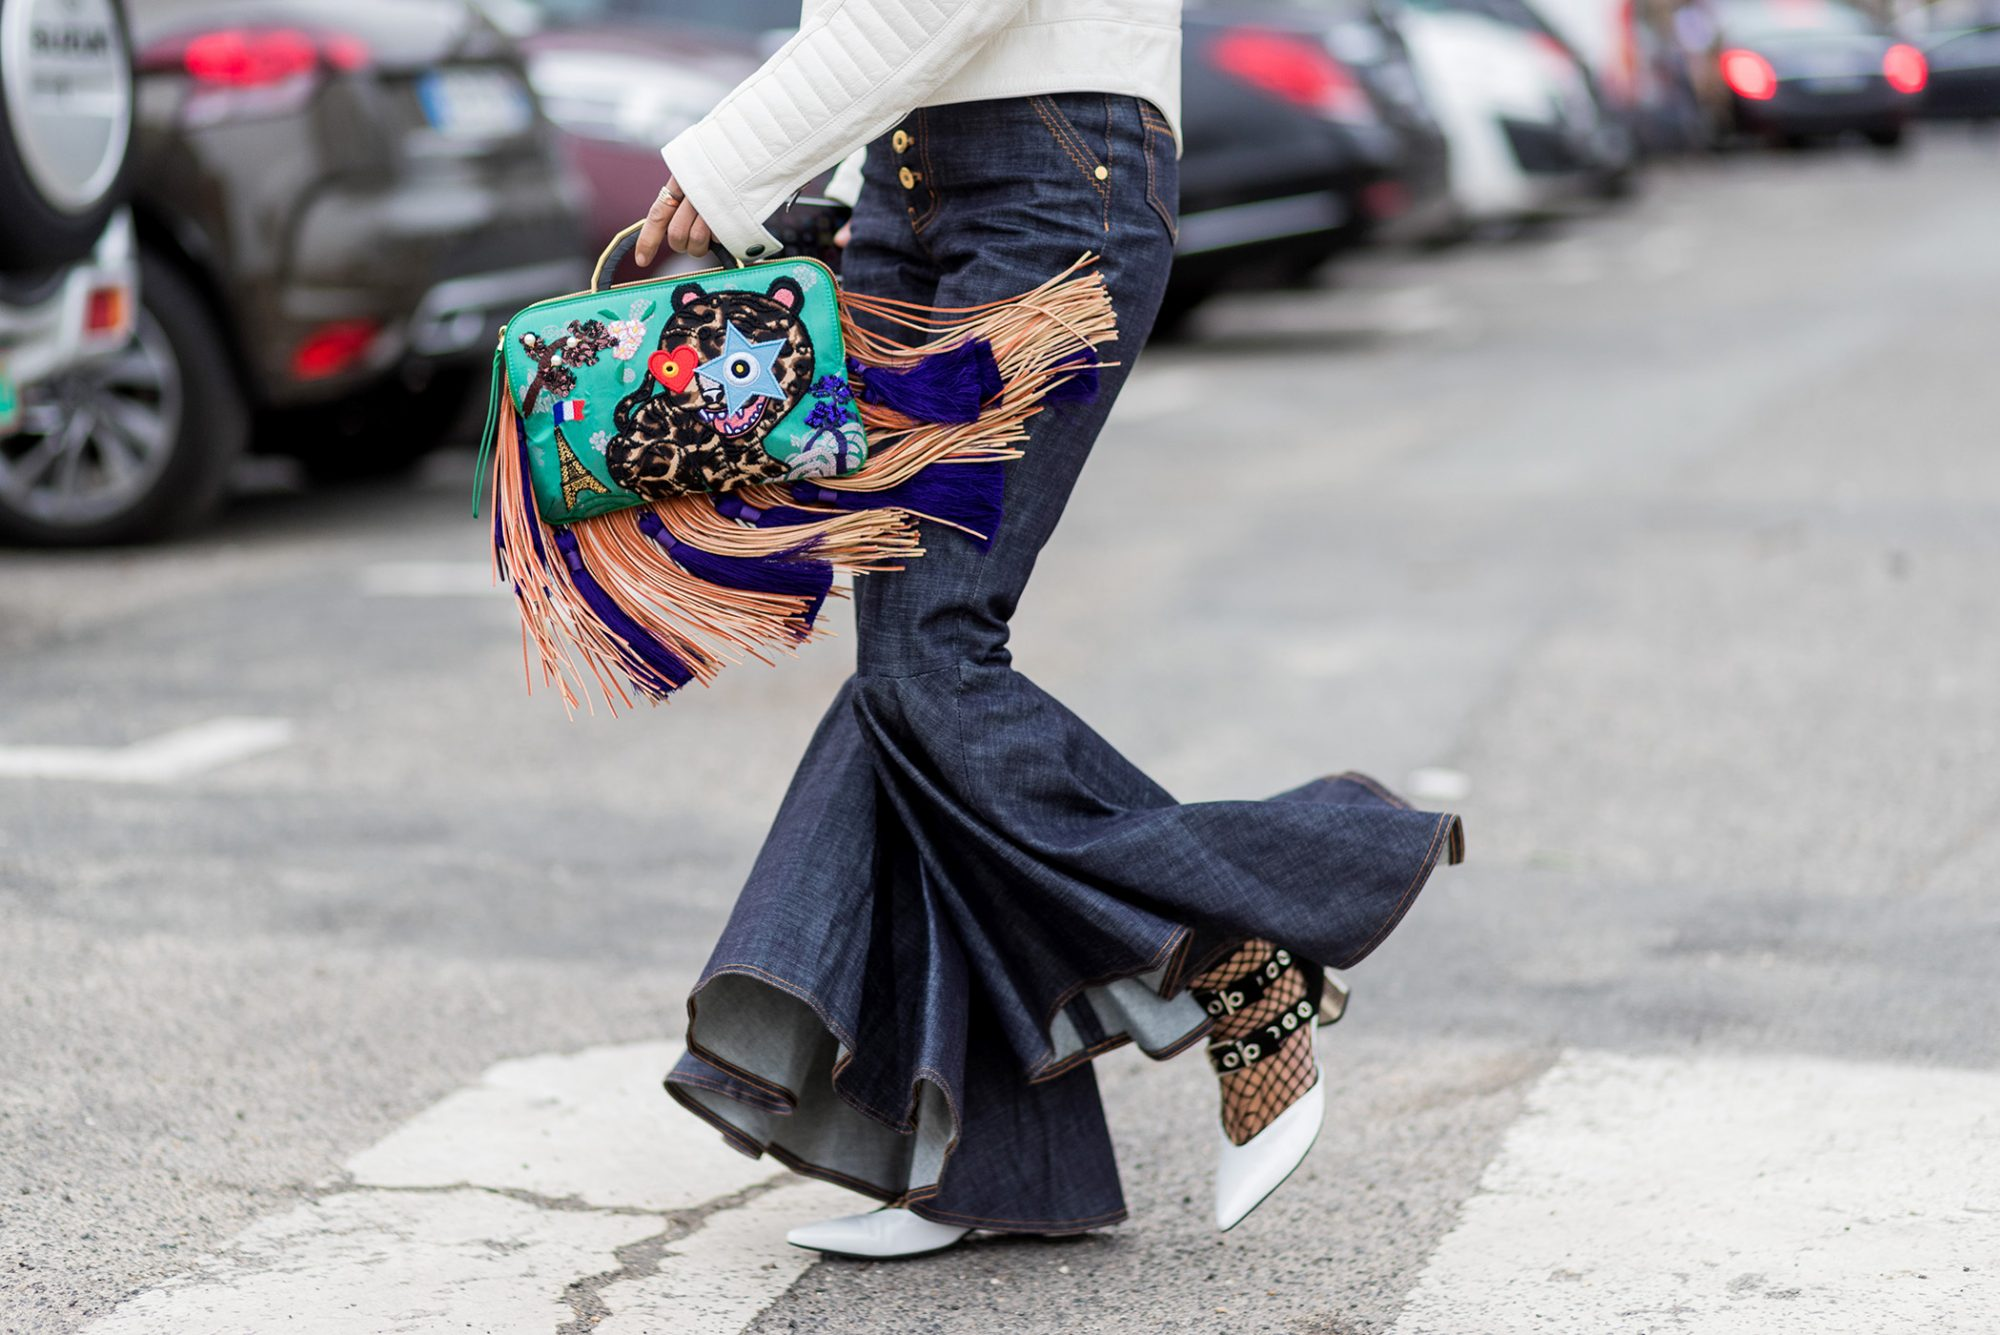 Pants with a kick, a bag with swoosh